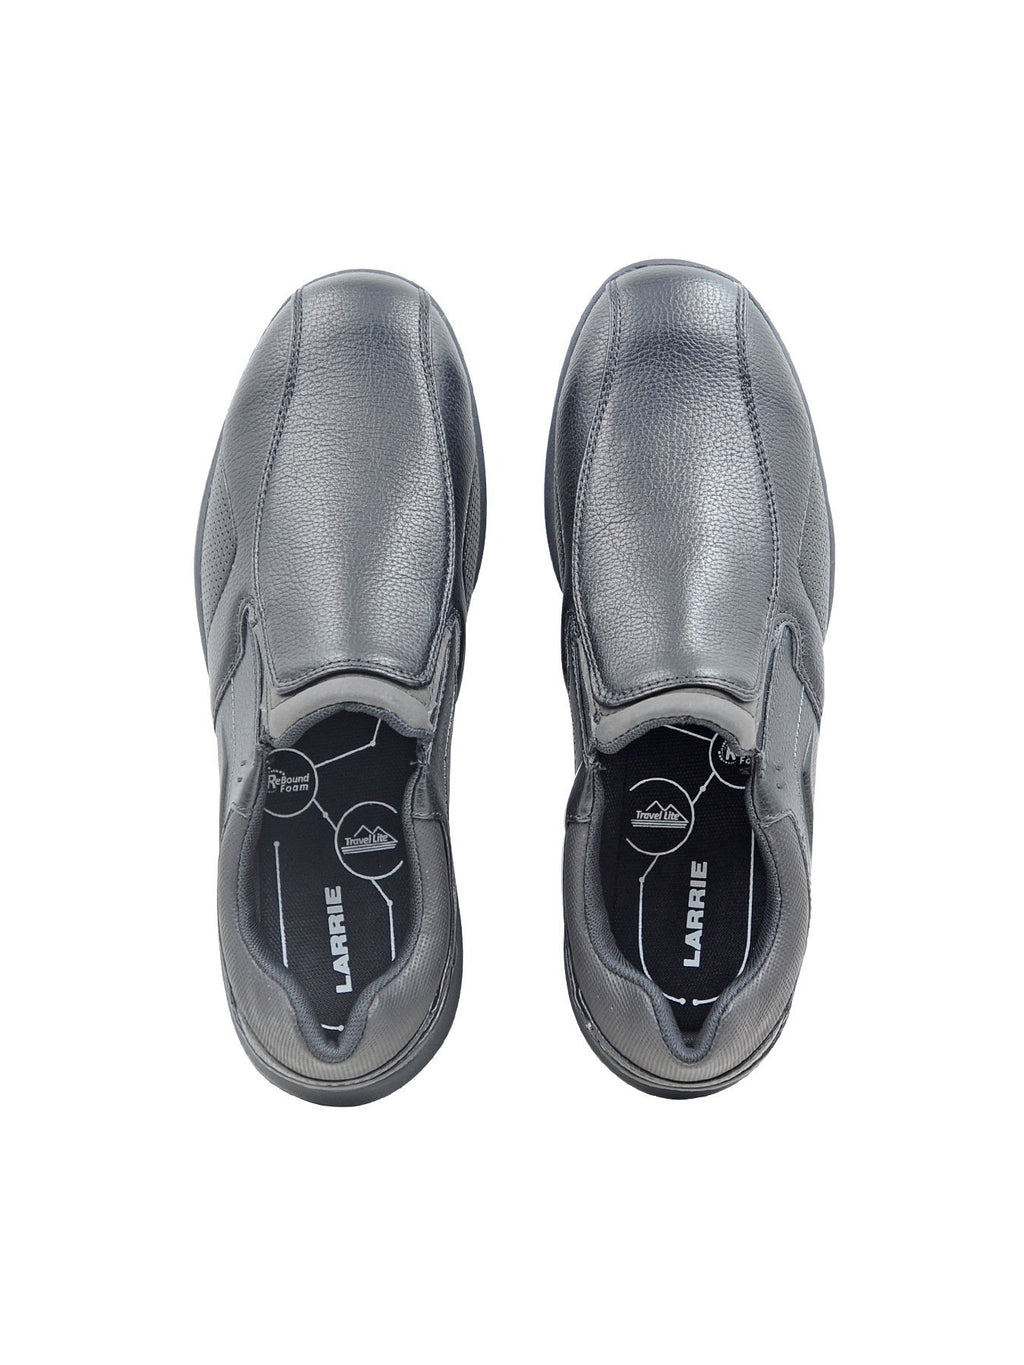 Larrie Black Smooth Slip On Shoes